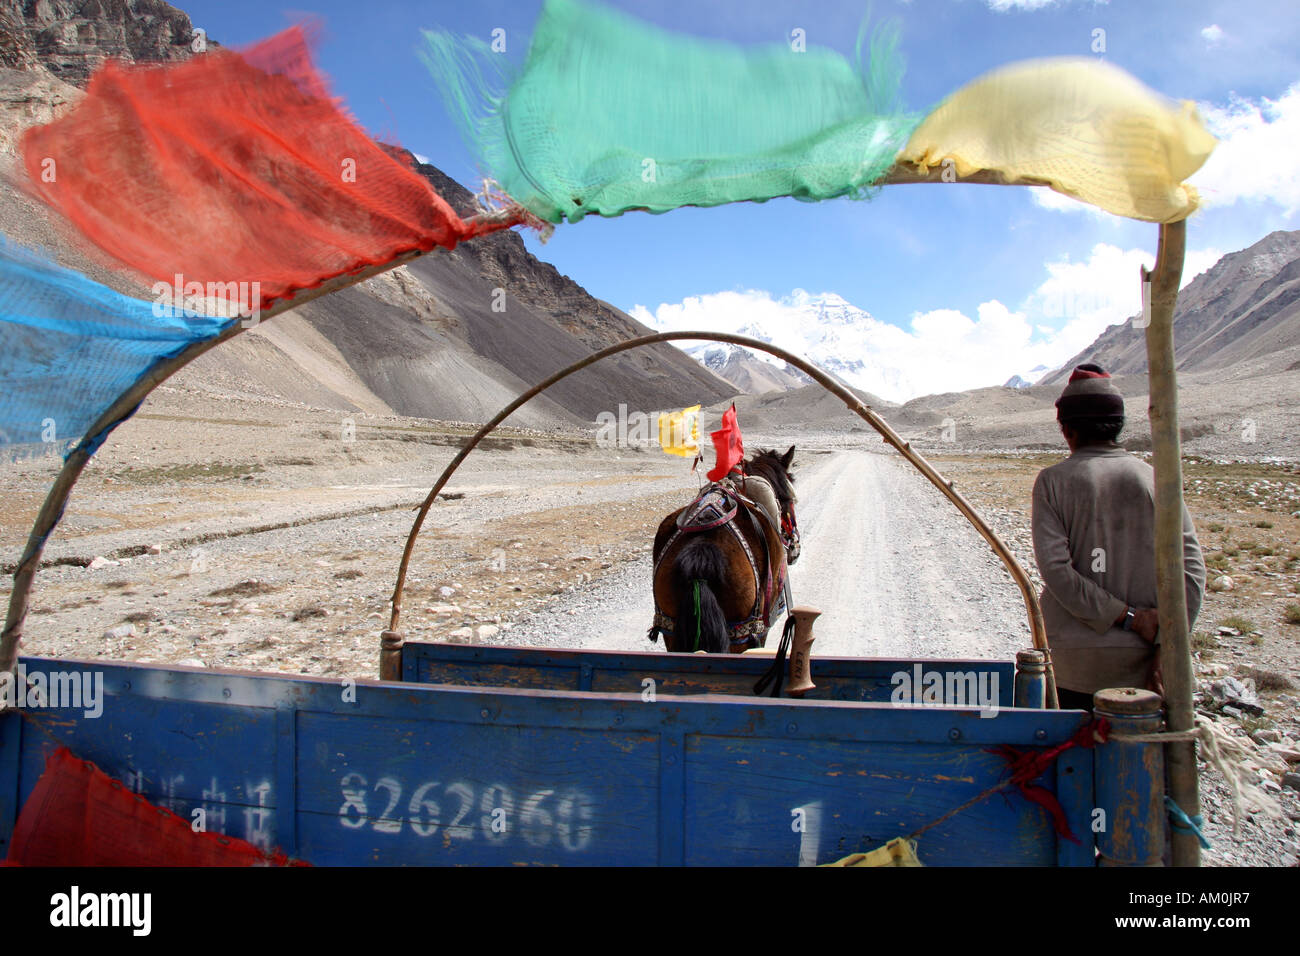 Horse and cart transport from Rongbuk Monastery to Everest Base Camp, Mt Qomolangma, The Himalayas, Tibet, China - Stock Image